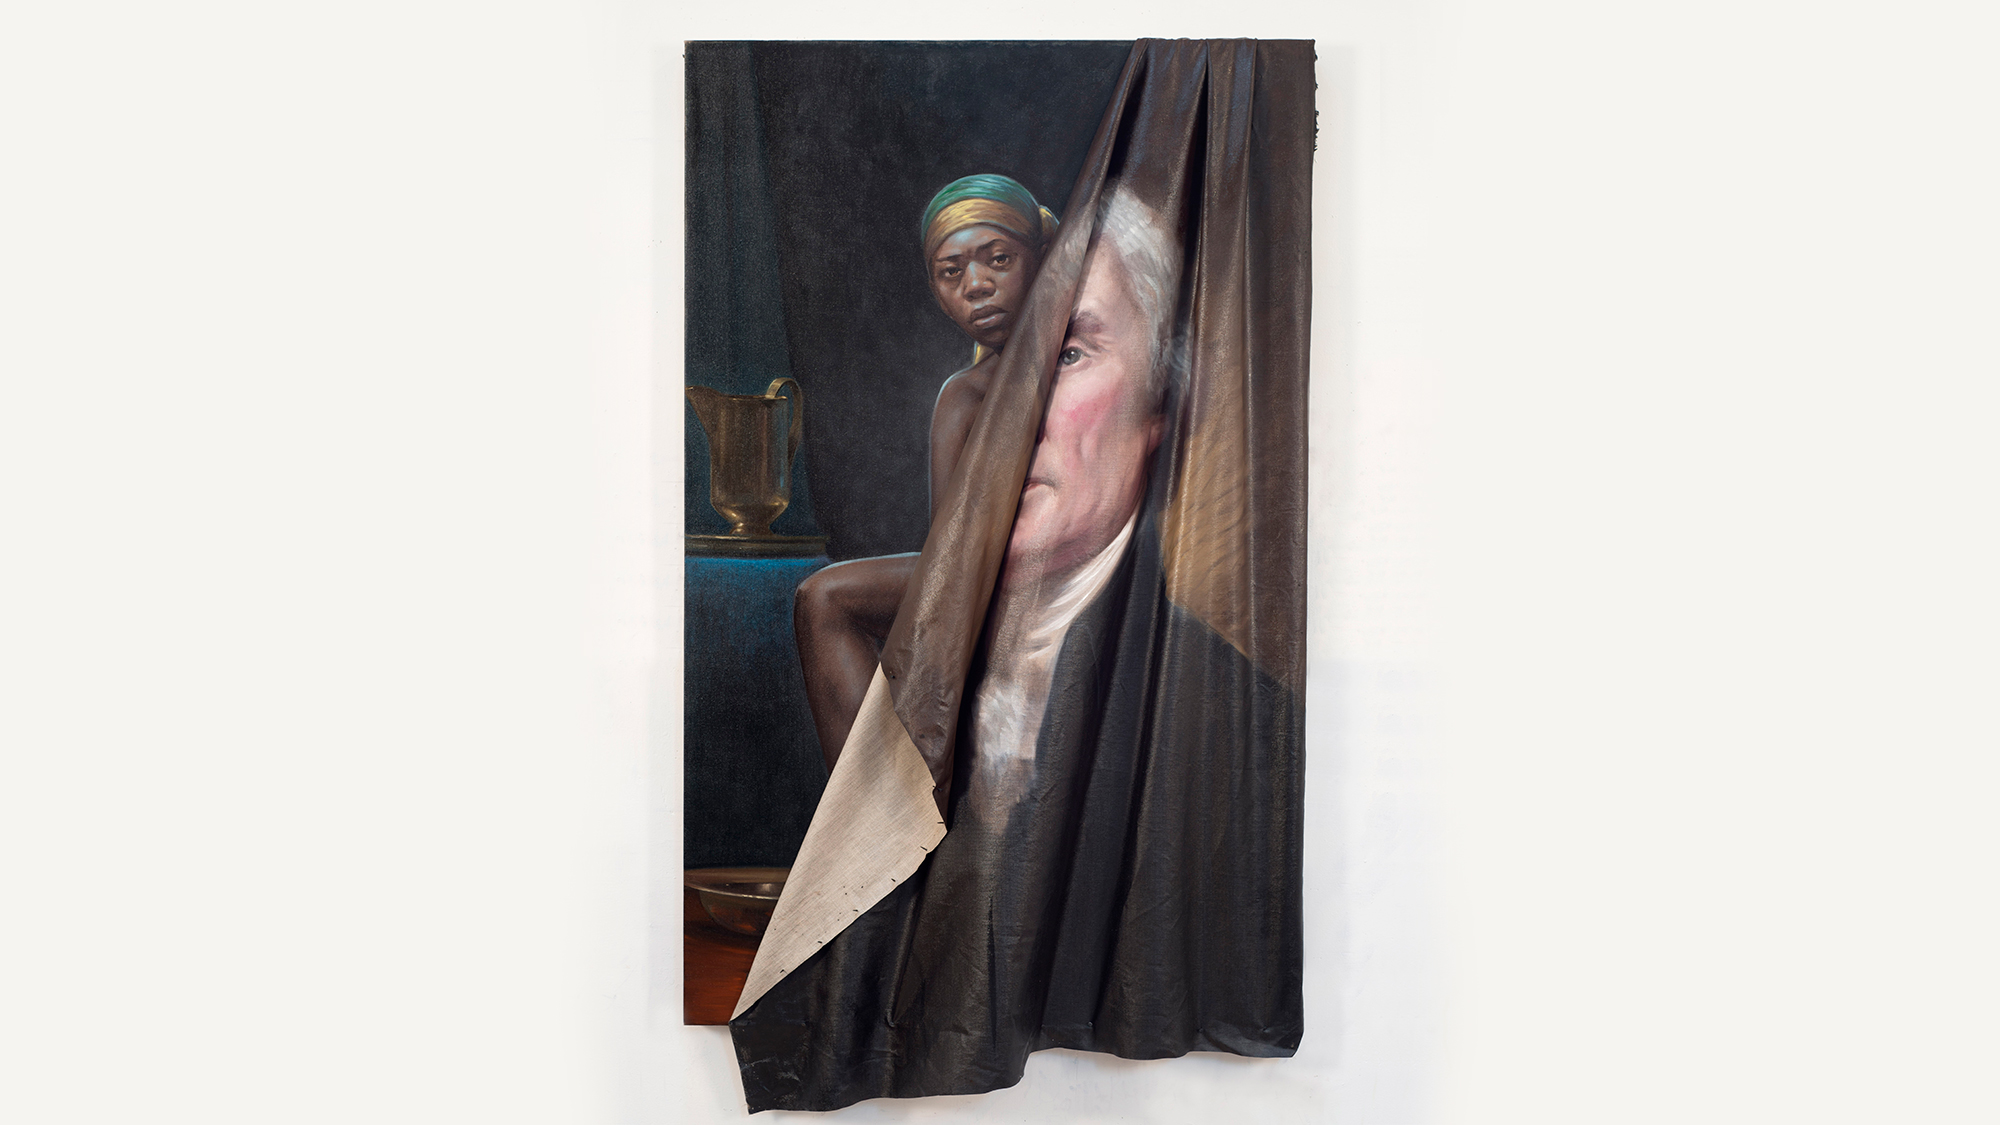 African-American woman revealed behind portrait of Thomas Jefferson